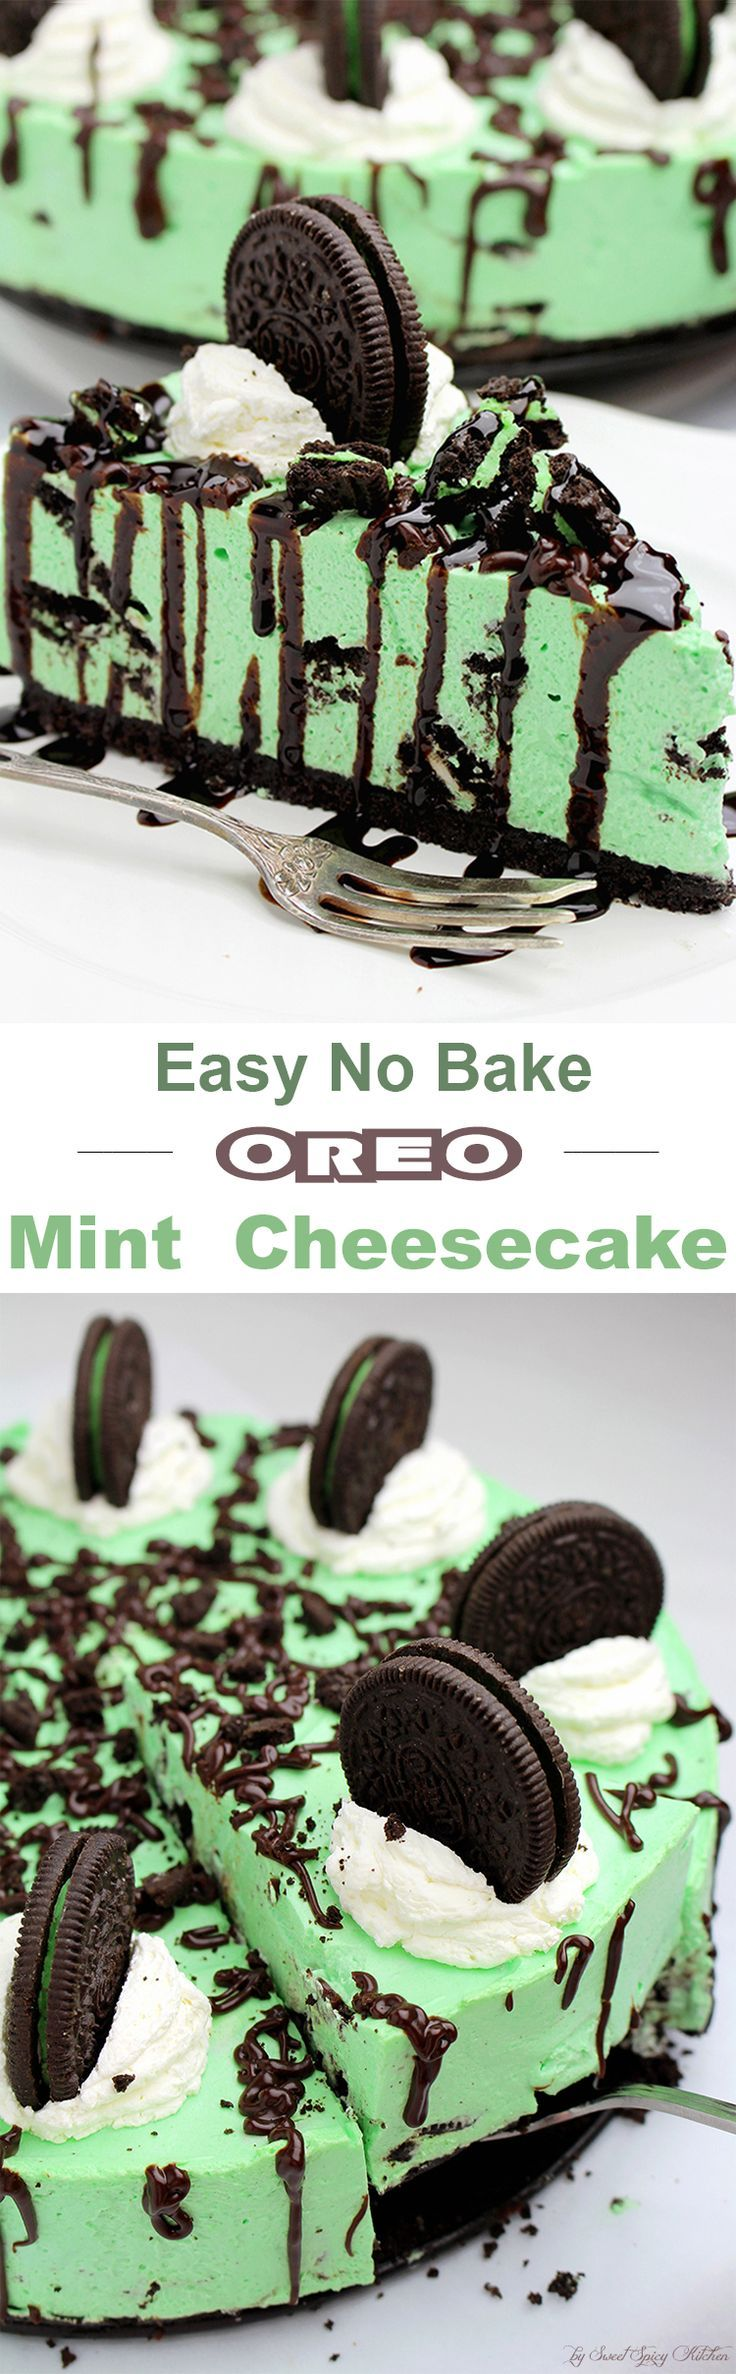 For all Oreo fans I have this fantastic dessert - Easy No Bake Oreo Mint Cheesecake - perfect for special occasions or holidays, like St. Patrick's Day ♥️